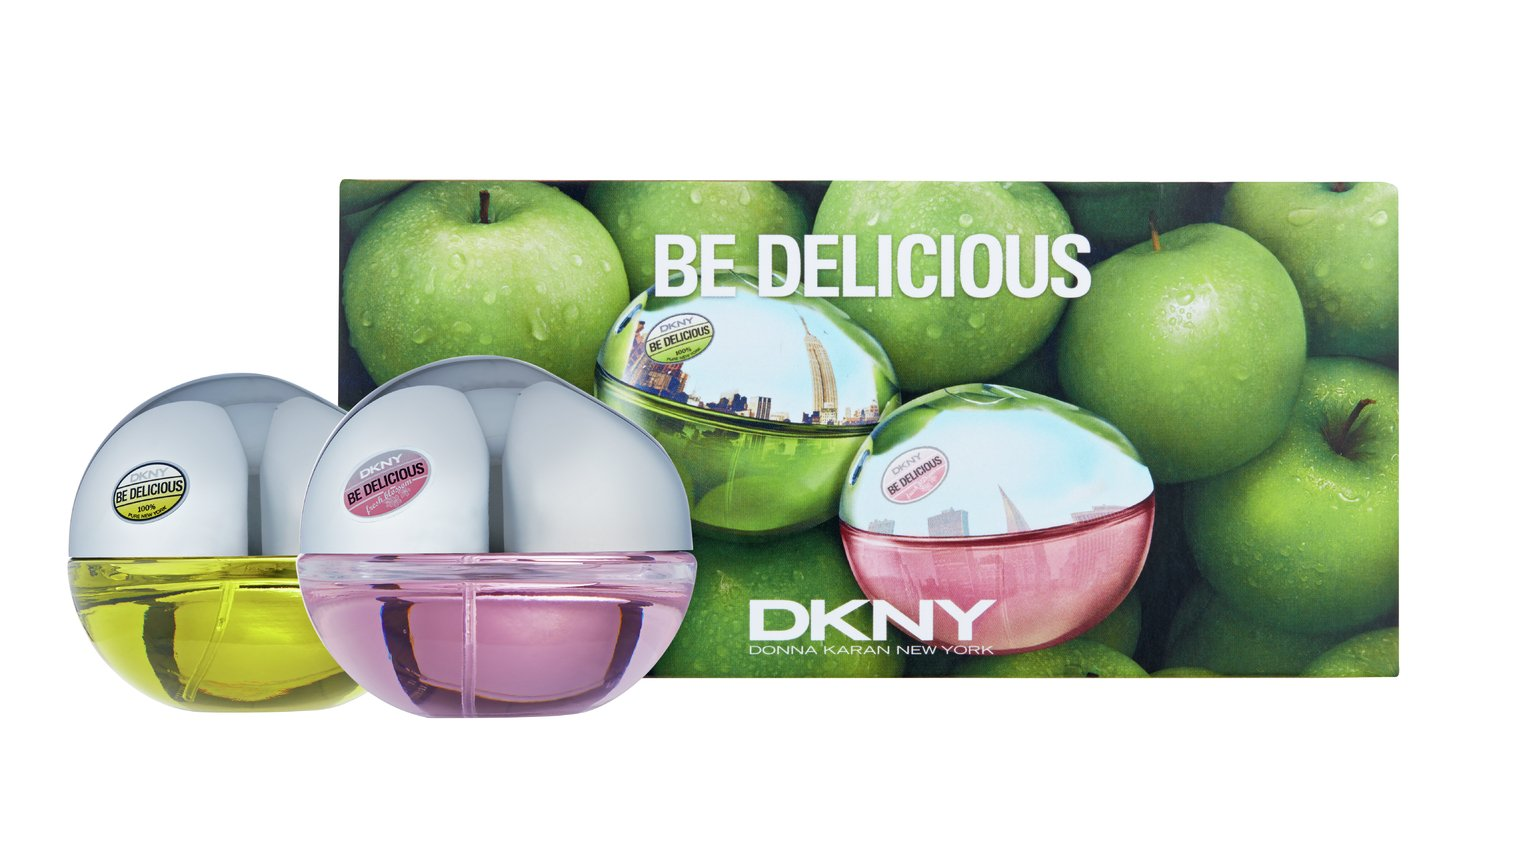 DKNY Be Delicious and Fresh Blossom Eau de Parfum - 2 x 30ml